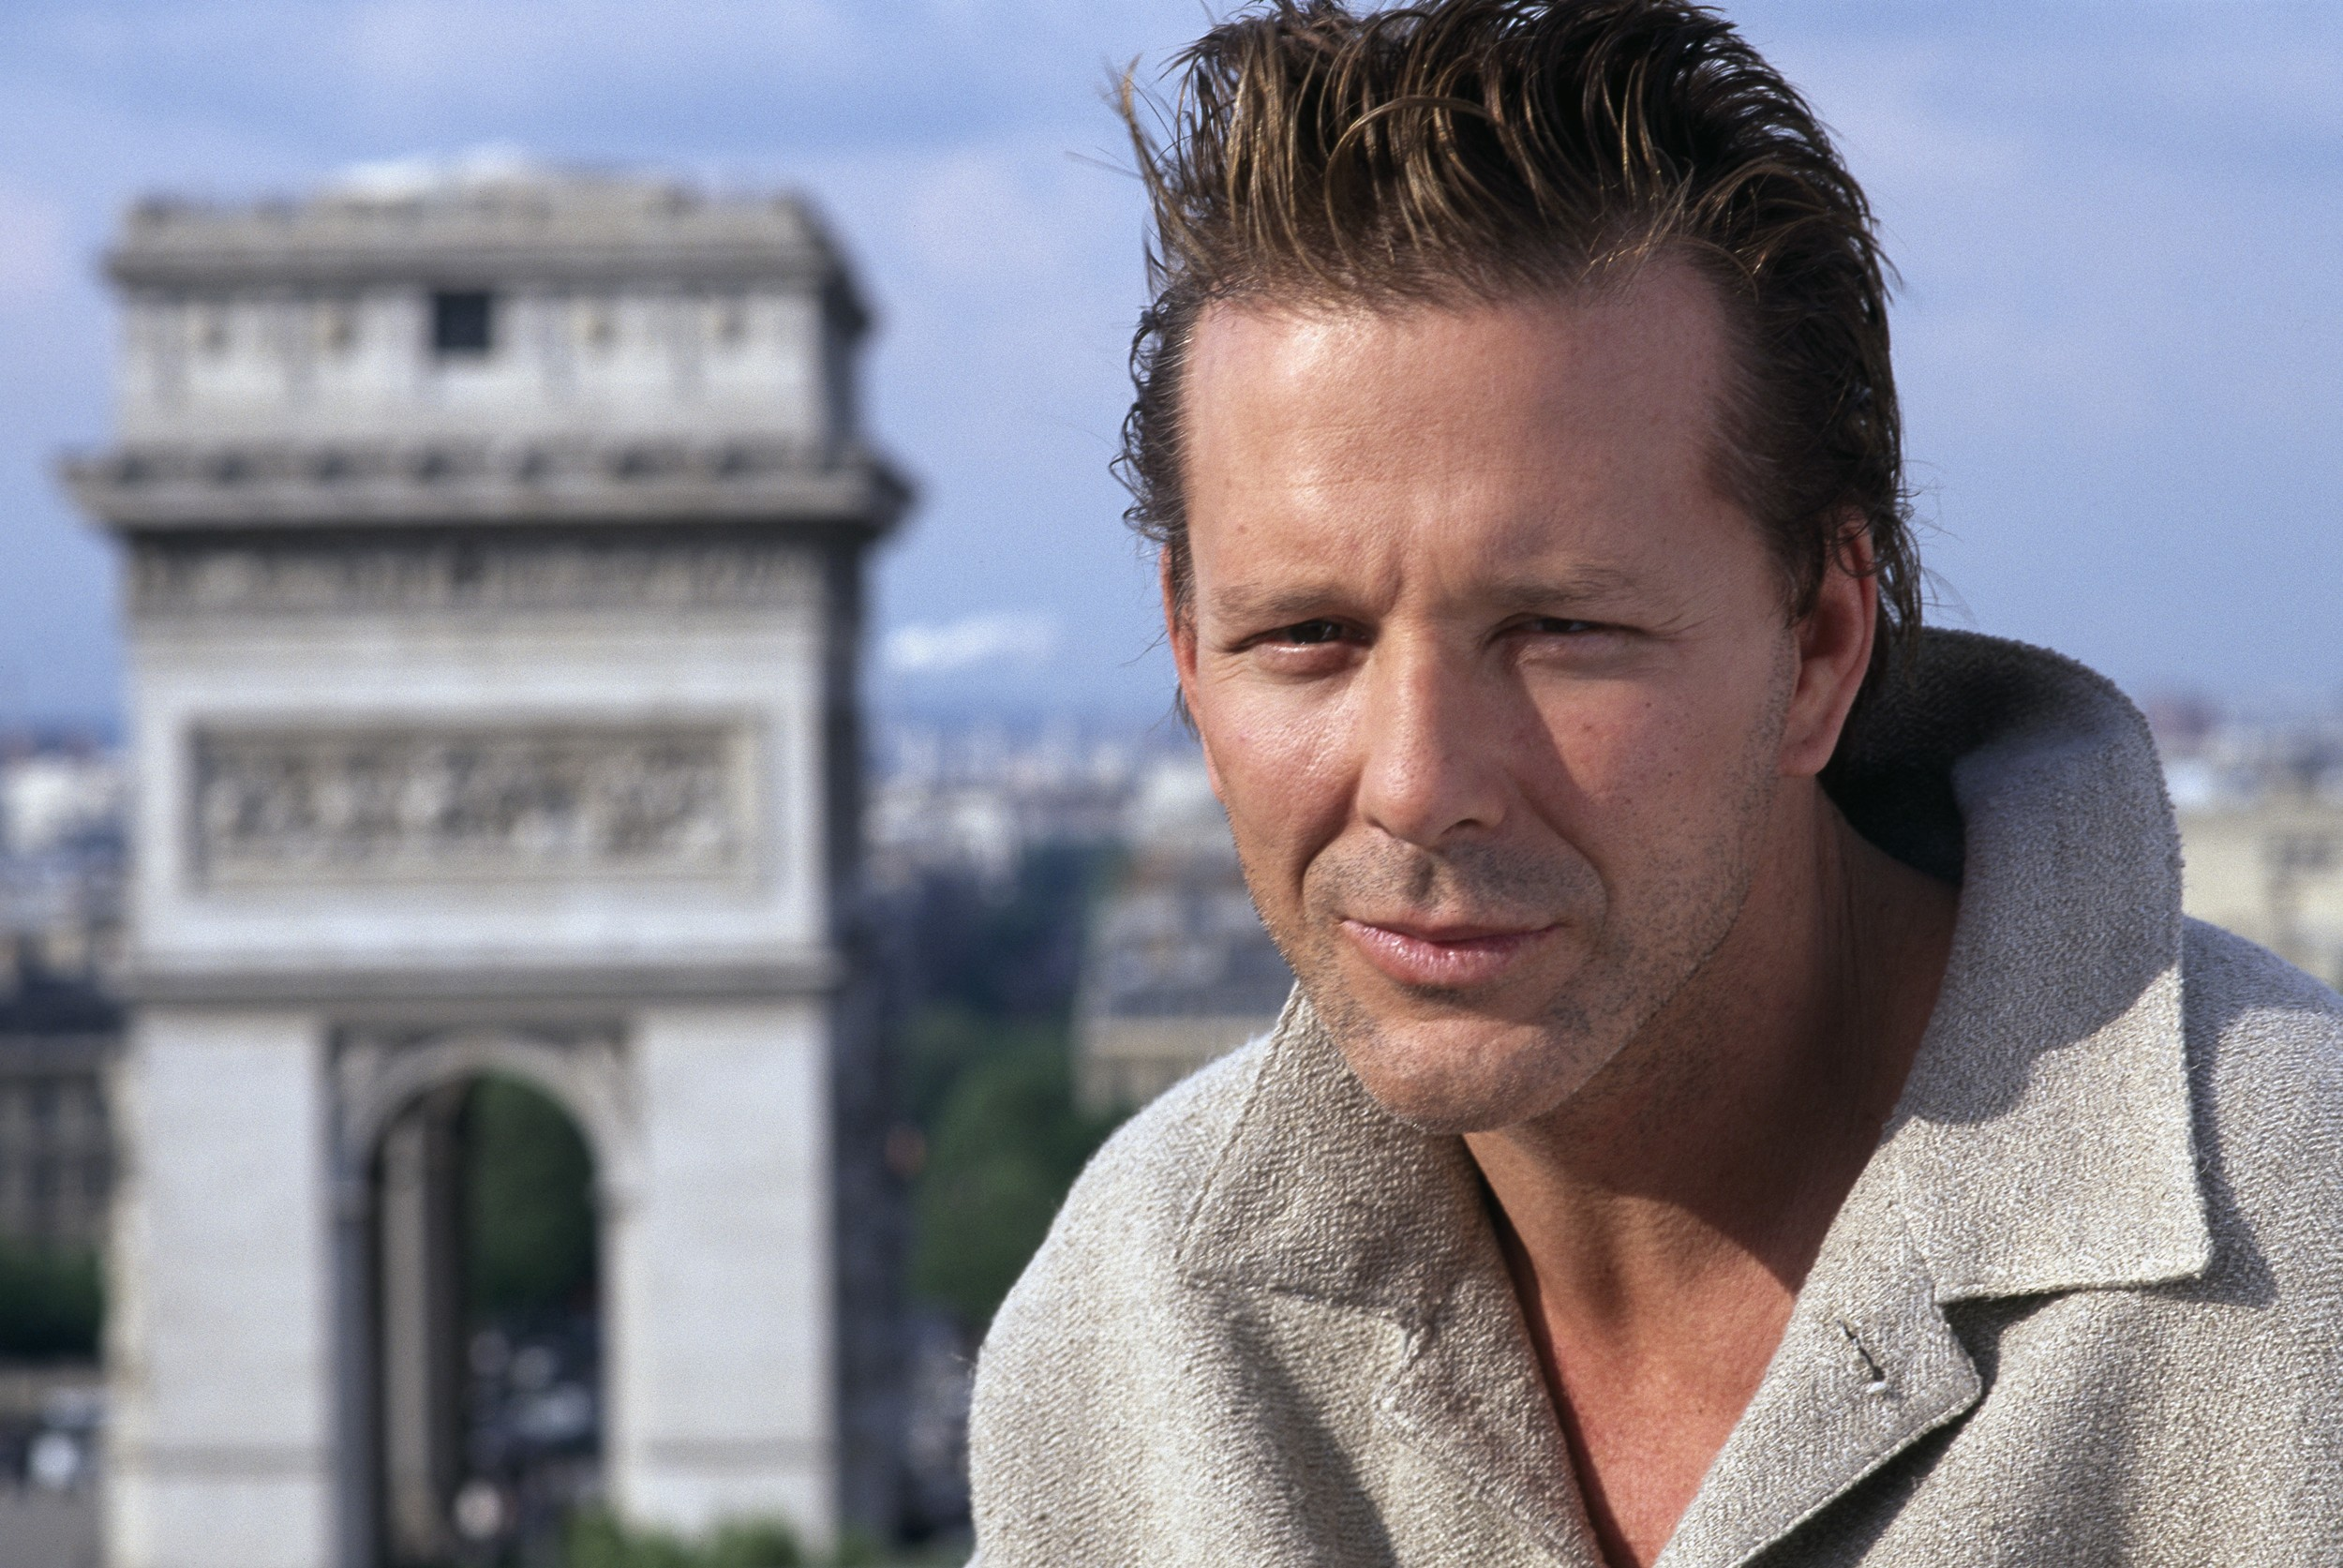 Mickey rourke younger pictures